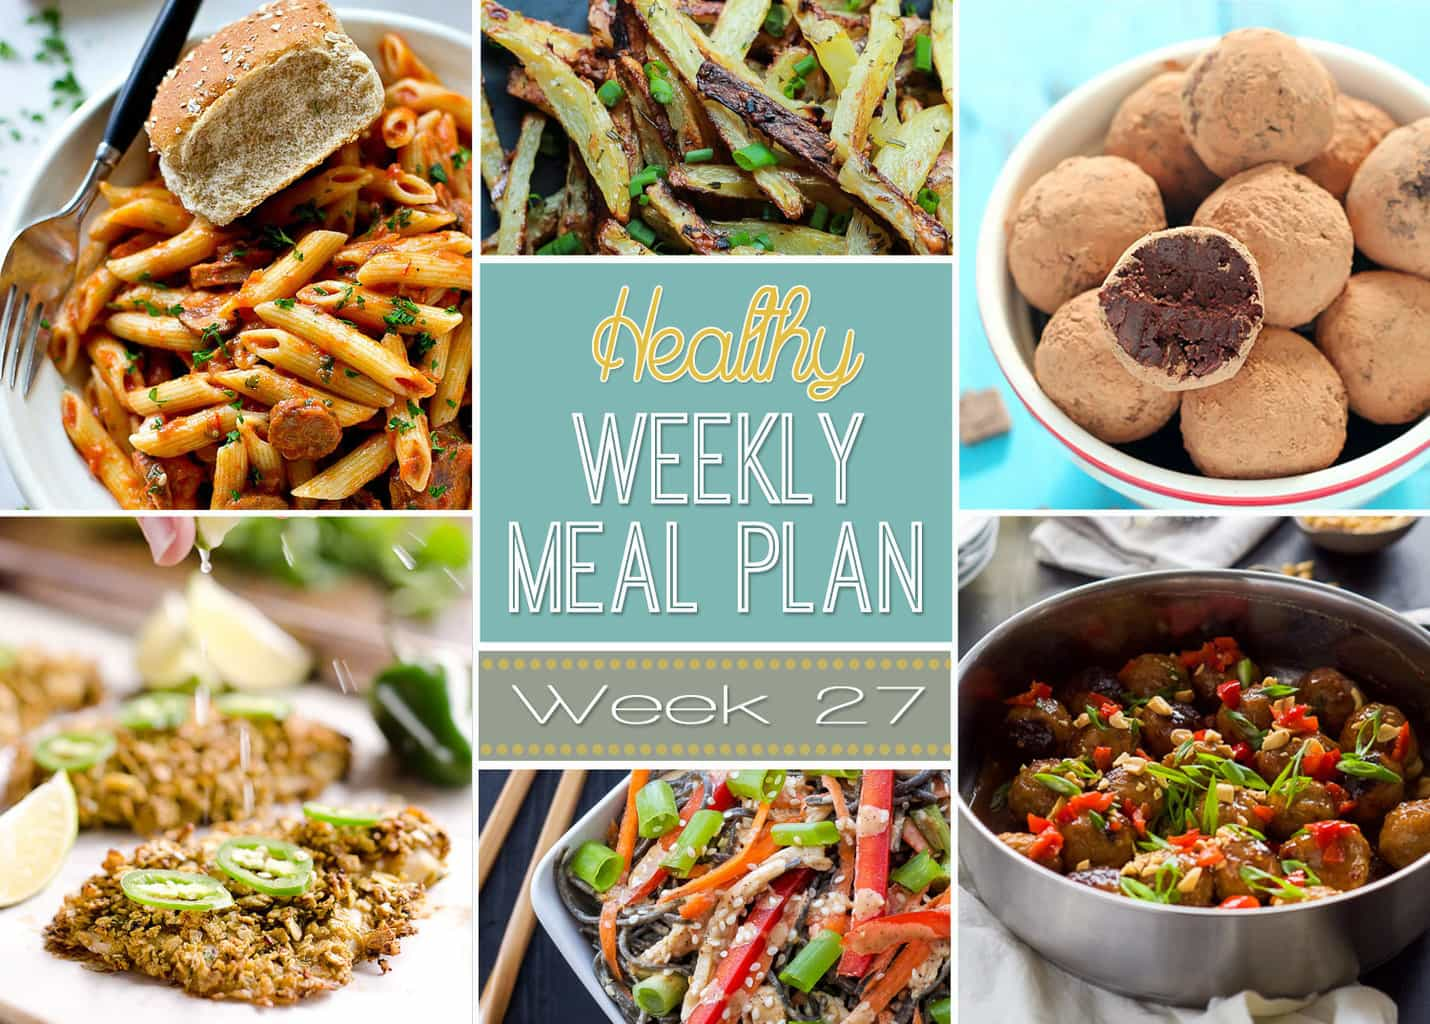 Healthy Weekly Meal Plan 27 Is Ready To Go With Meals Ranging From Breakfast